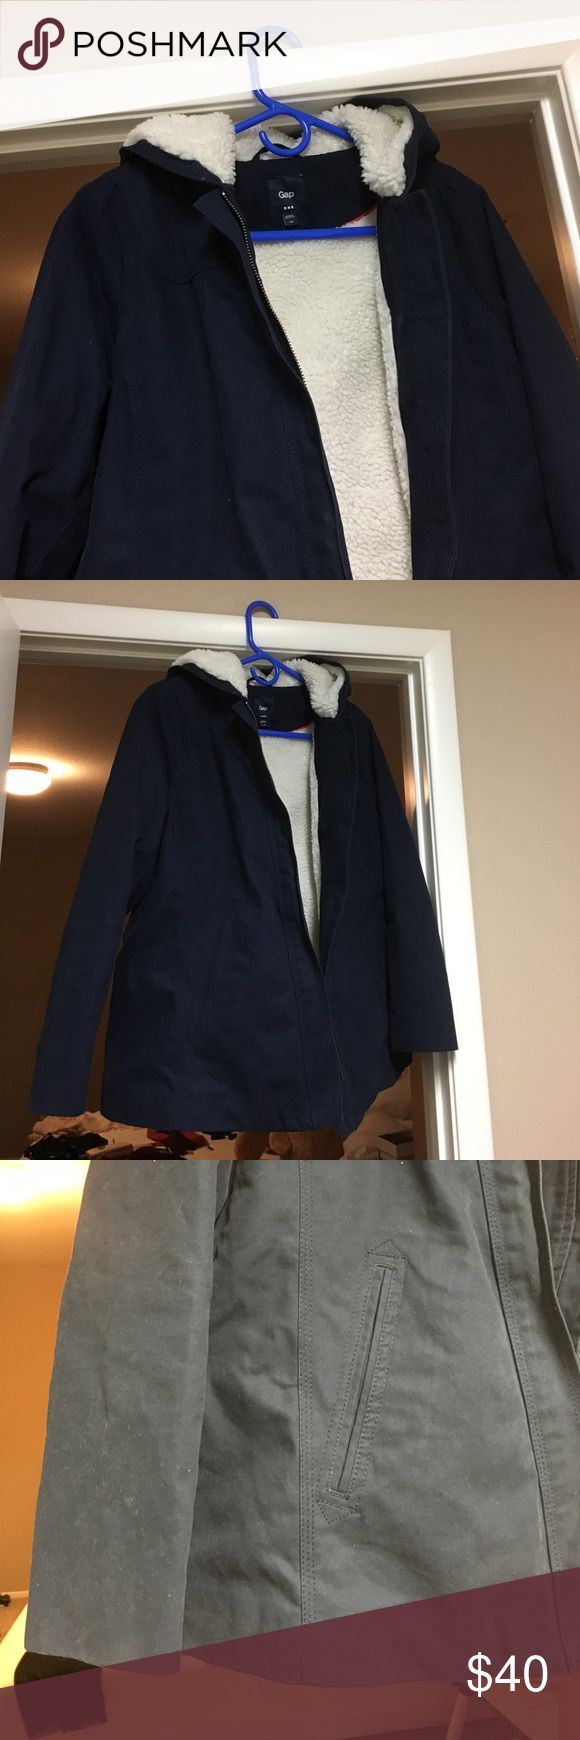 Gap coat Gently used GAP Jackets & Coats Pea Coats